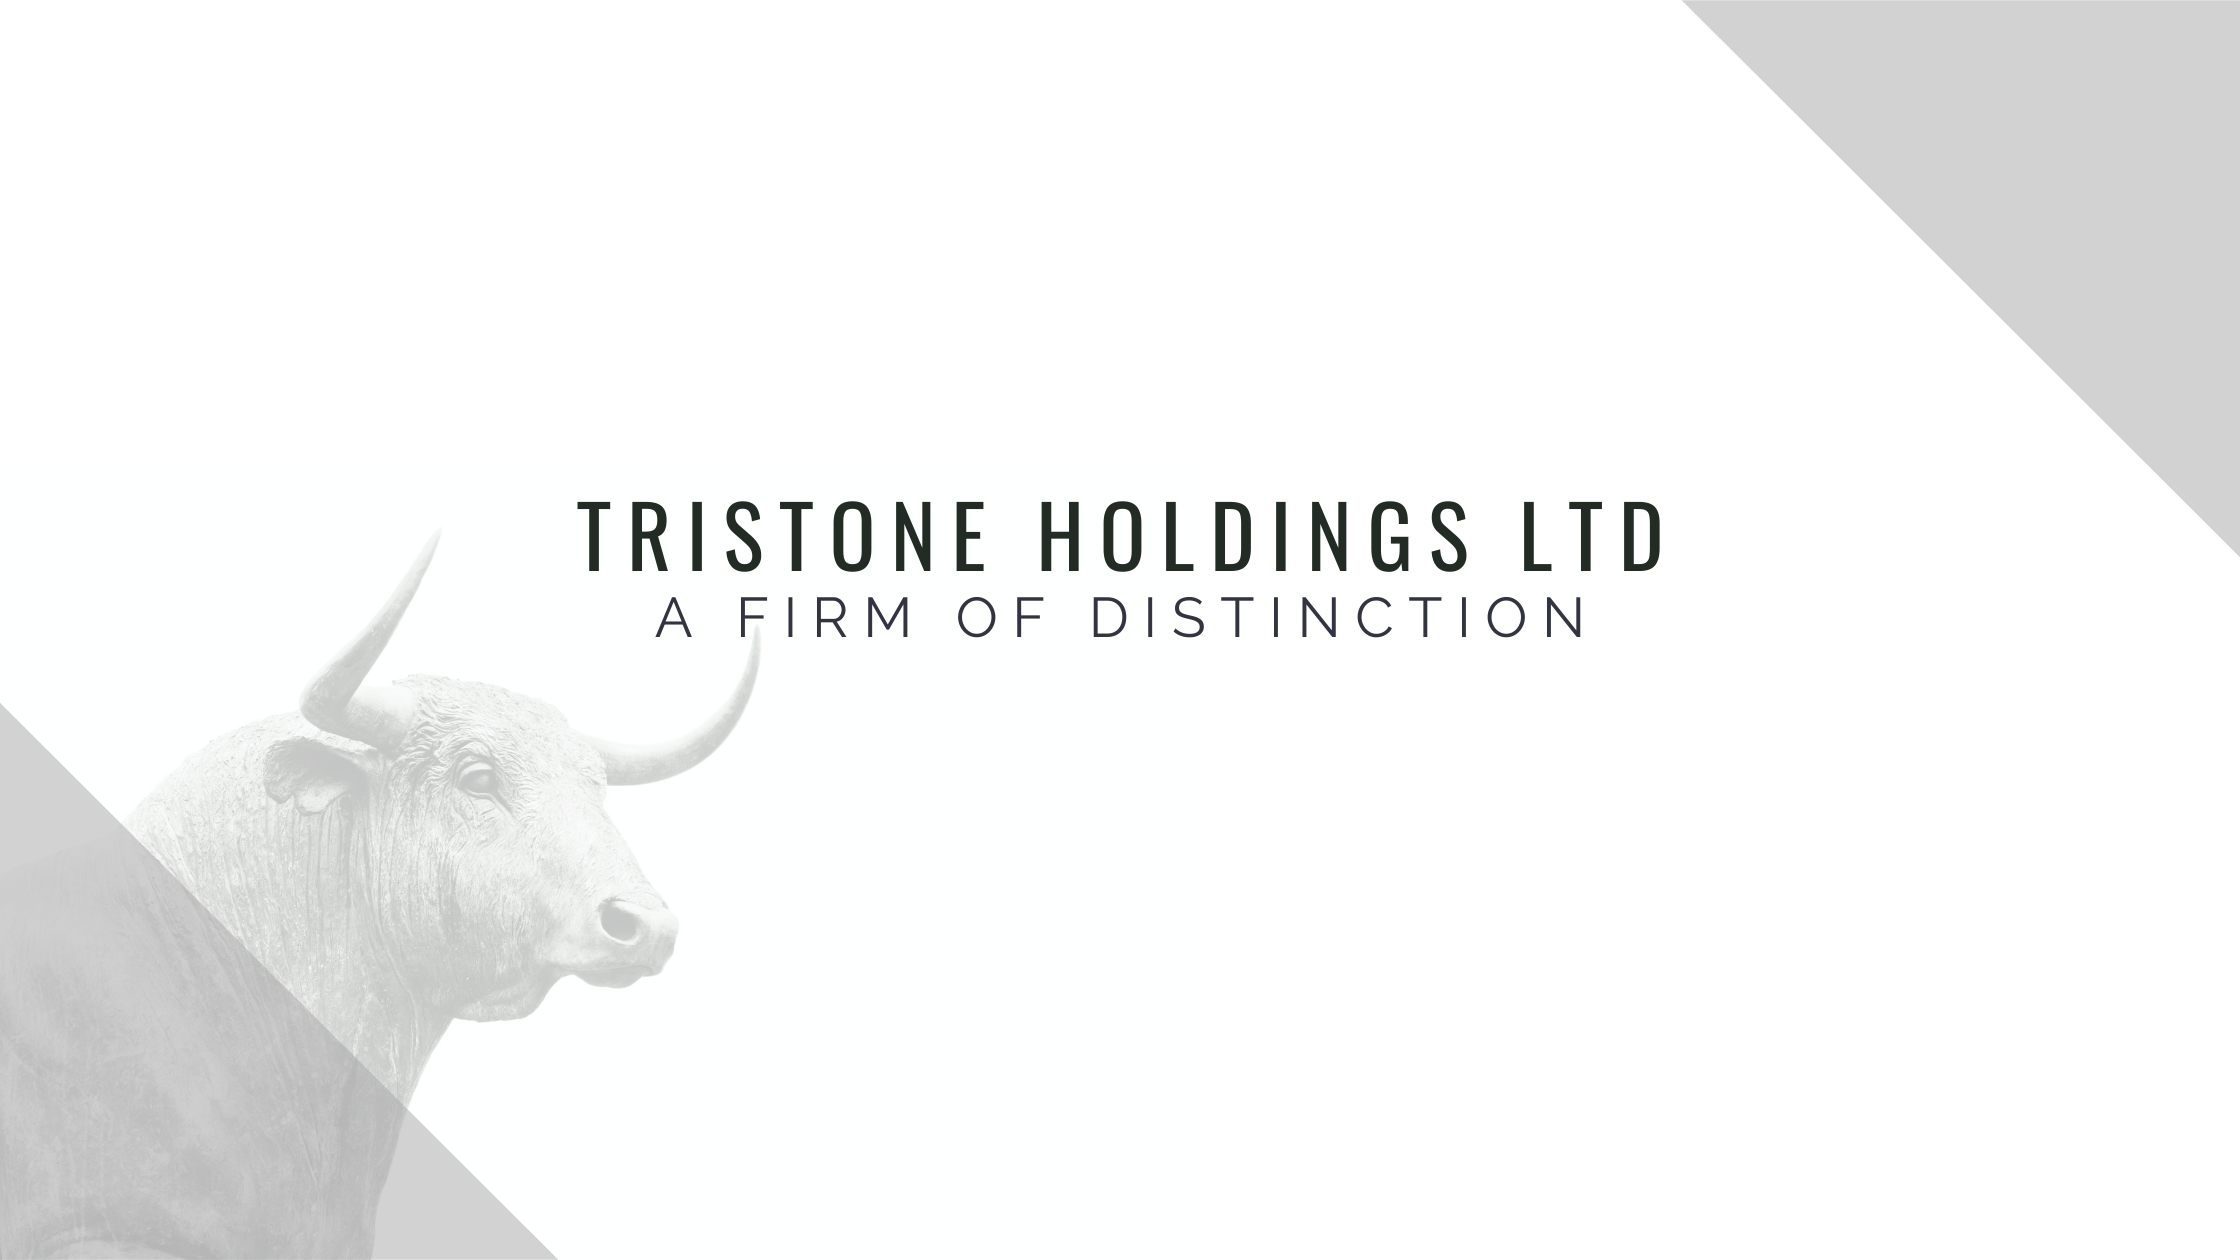 TriStone Holdings Ltd - A Firm Of Distinction.